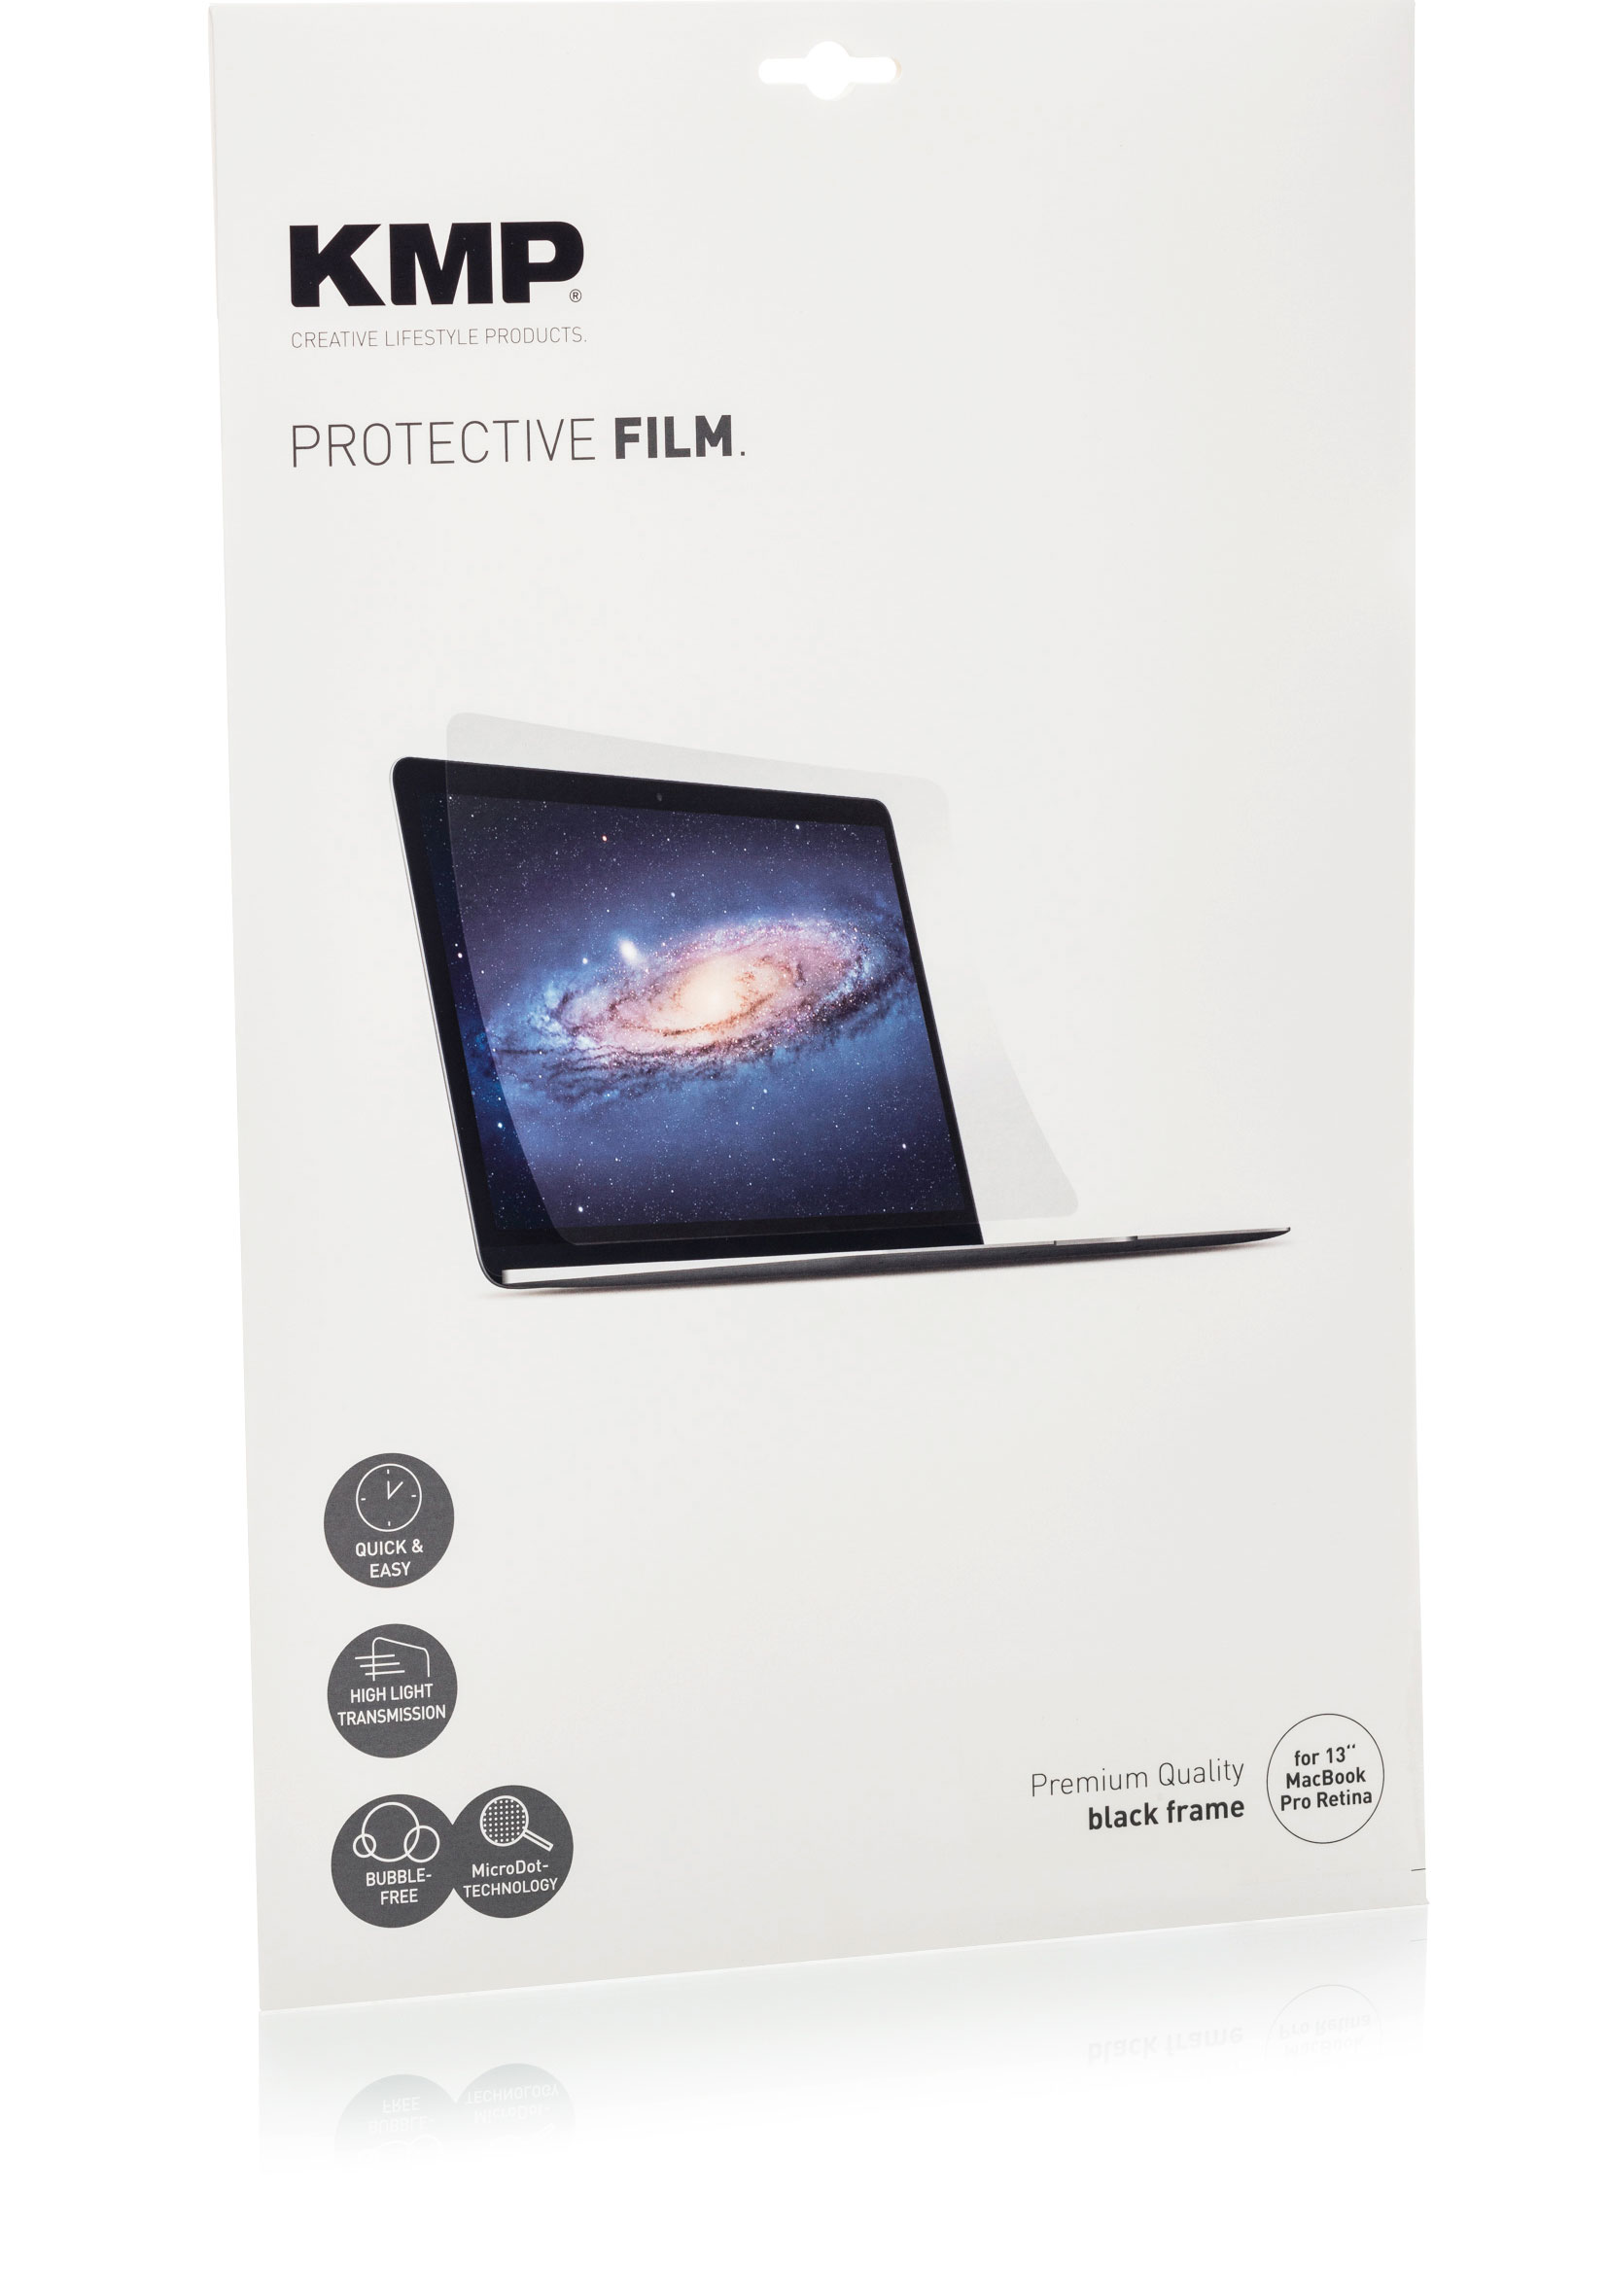 Protective Film for MacBook Pro Retina | KMP creative lifestyle products